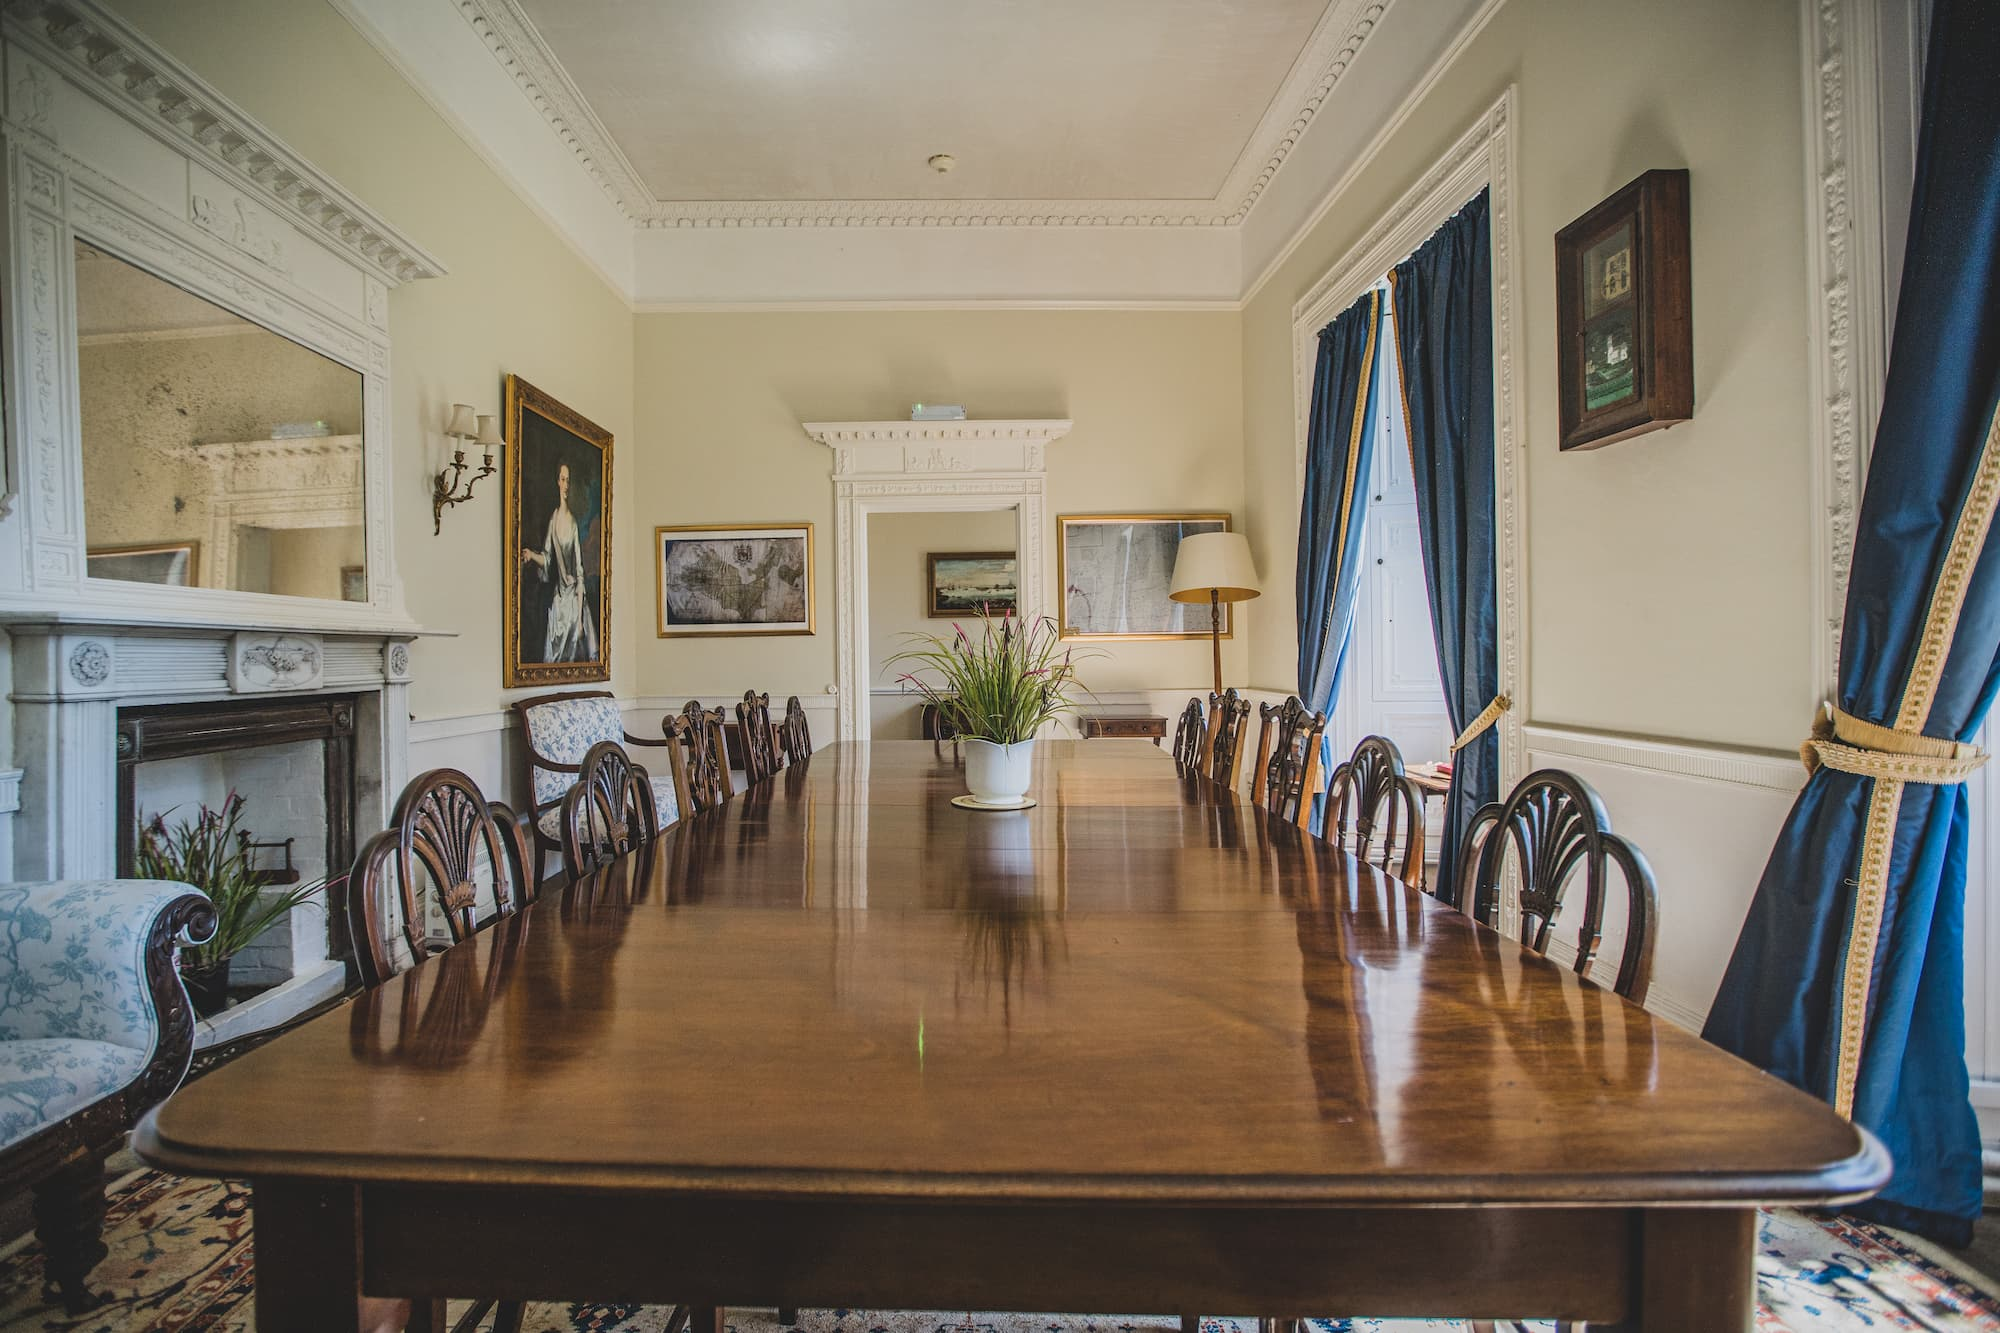 A large table with chairs for several people in a long room with a large fireplace and two tall windows.